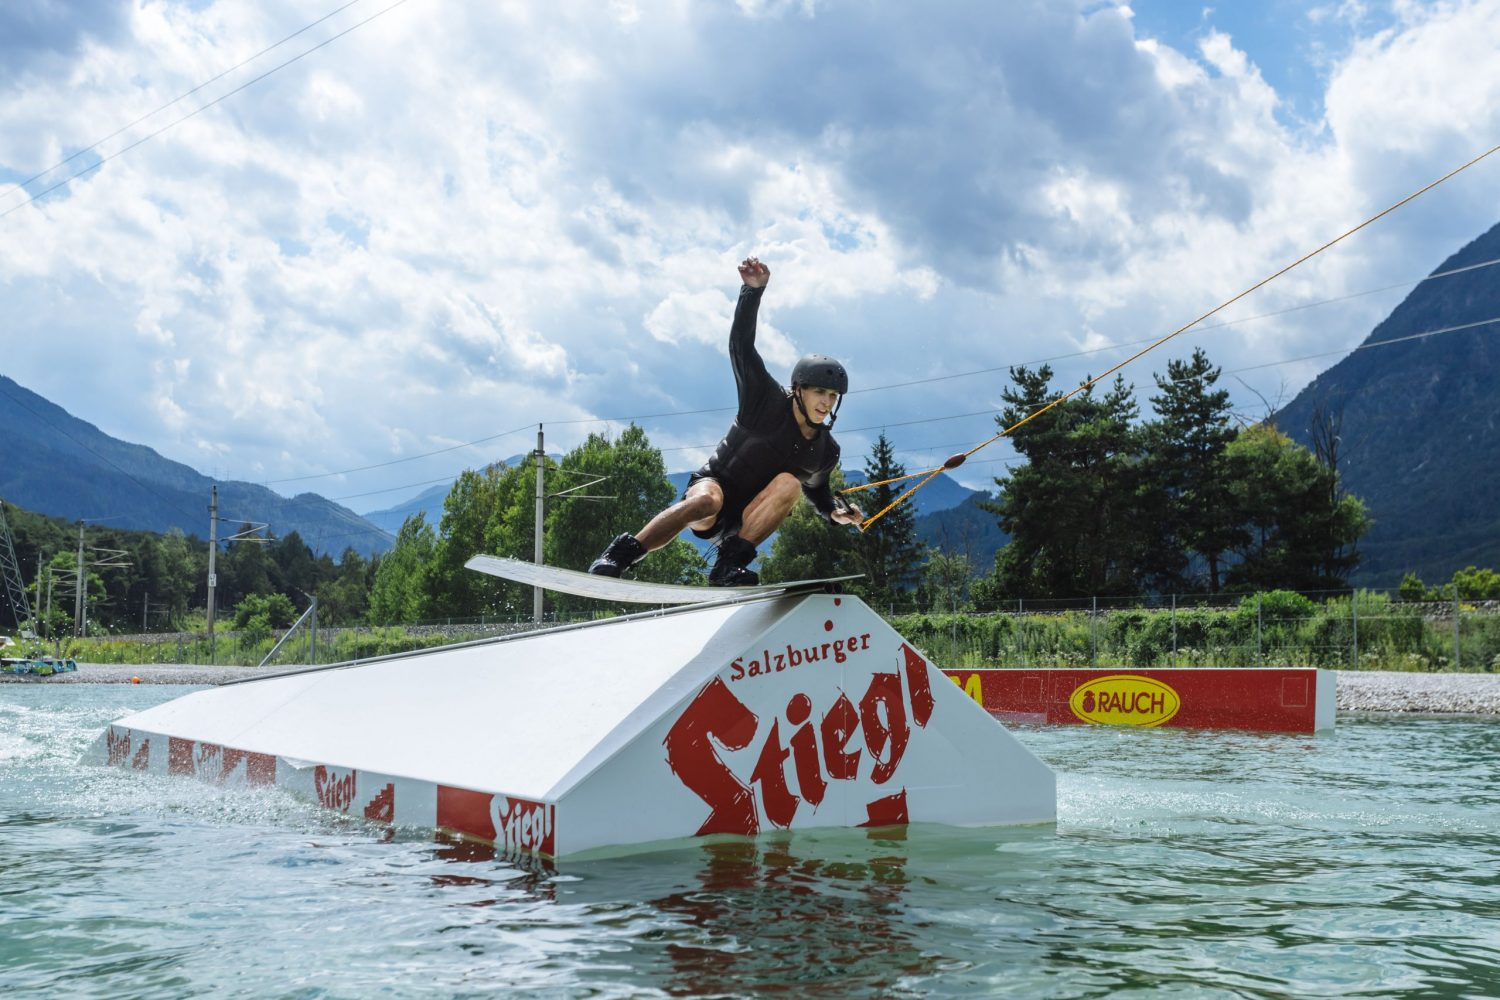 Wakeboarding at AREA 47 in Tyrol Austria